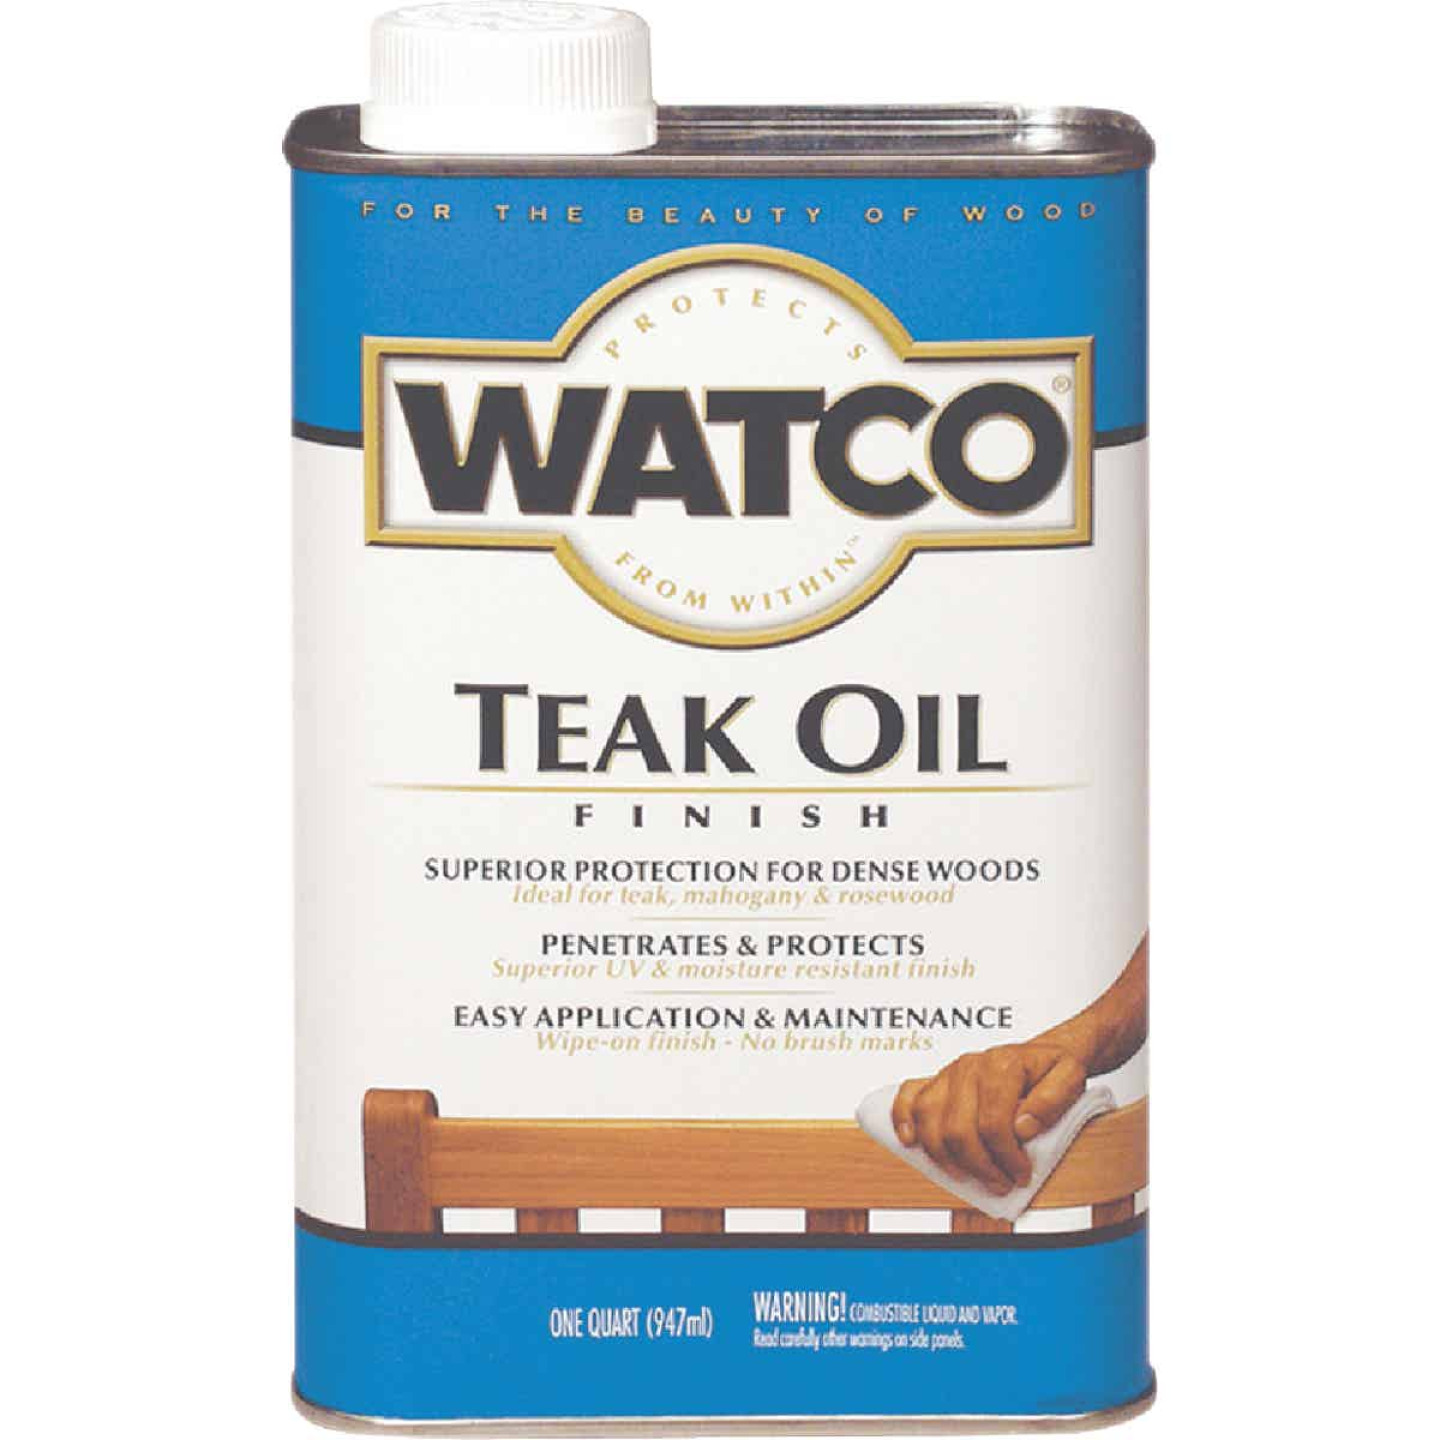 Watco 1 Qt. Low VOC Teak Oil Finish Image 1